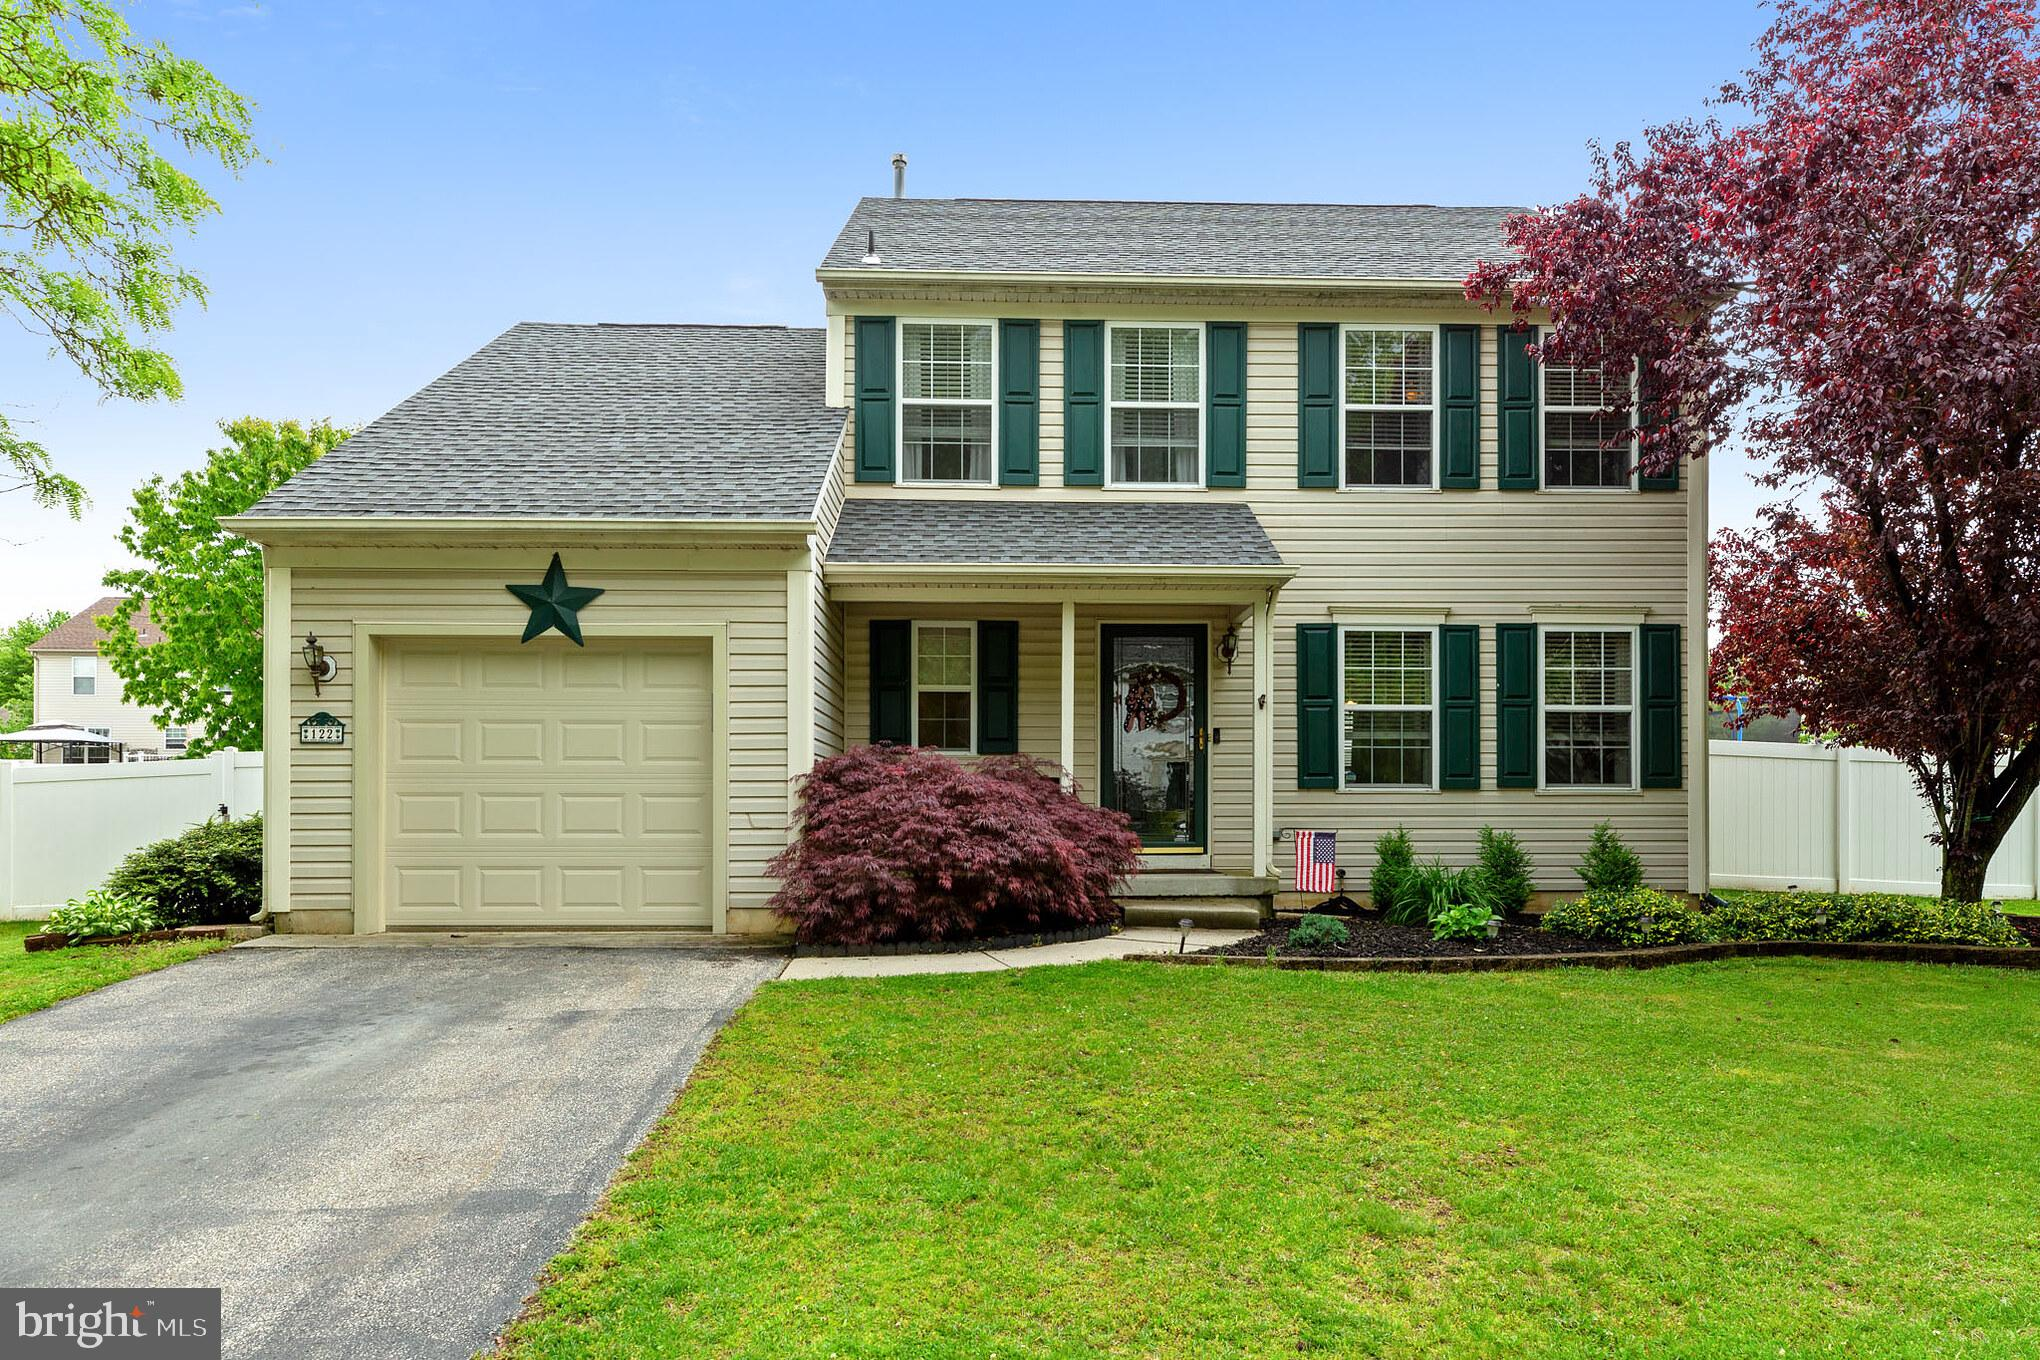 122 Ladds Lane, Westville, NJ 08093